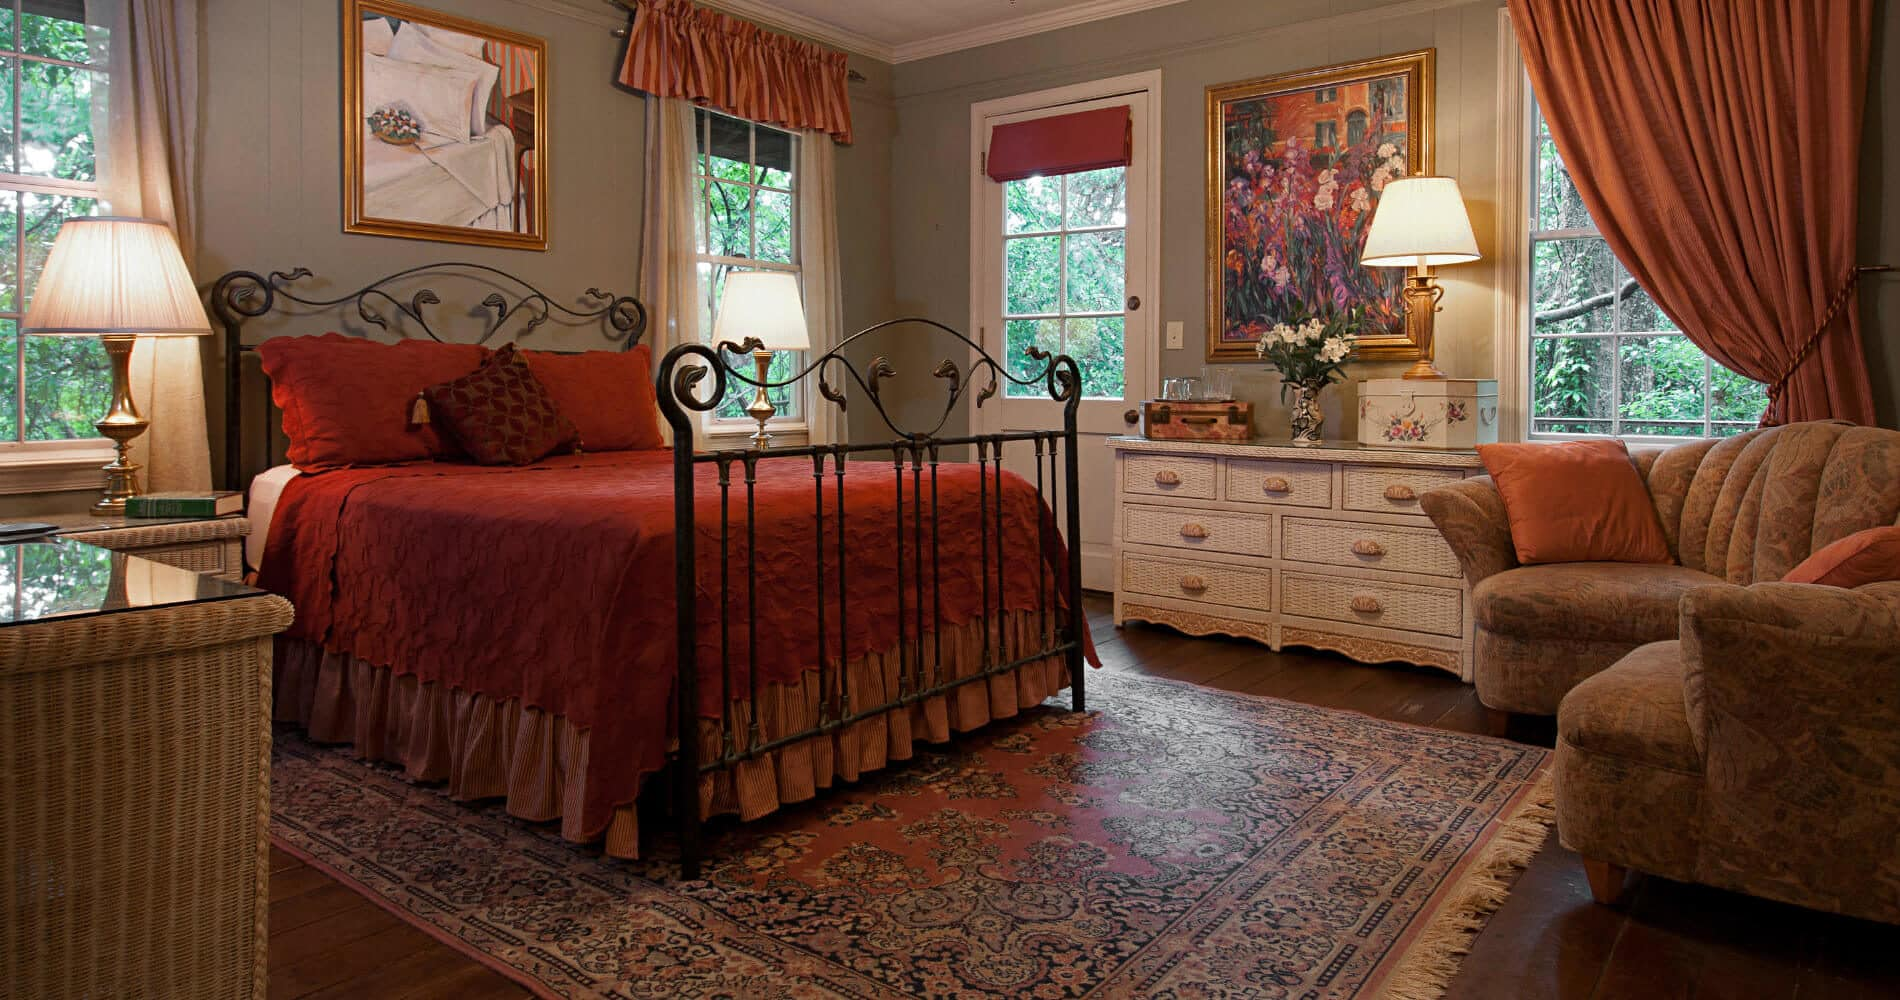 Bedroom with gray walls, red bedspread and curtains and a queen-sized iron bed